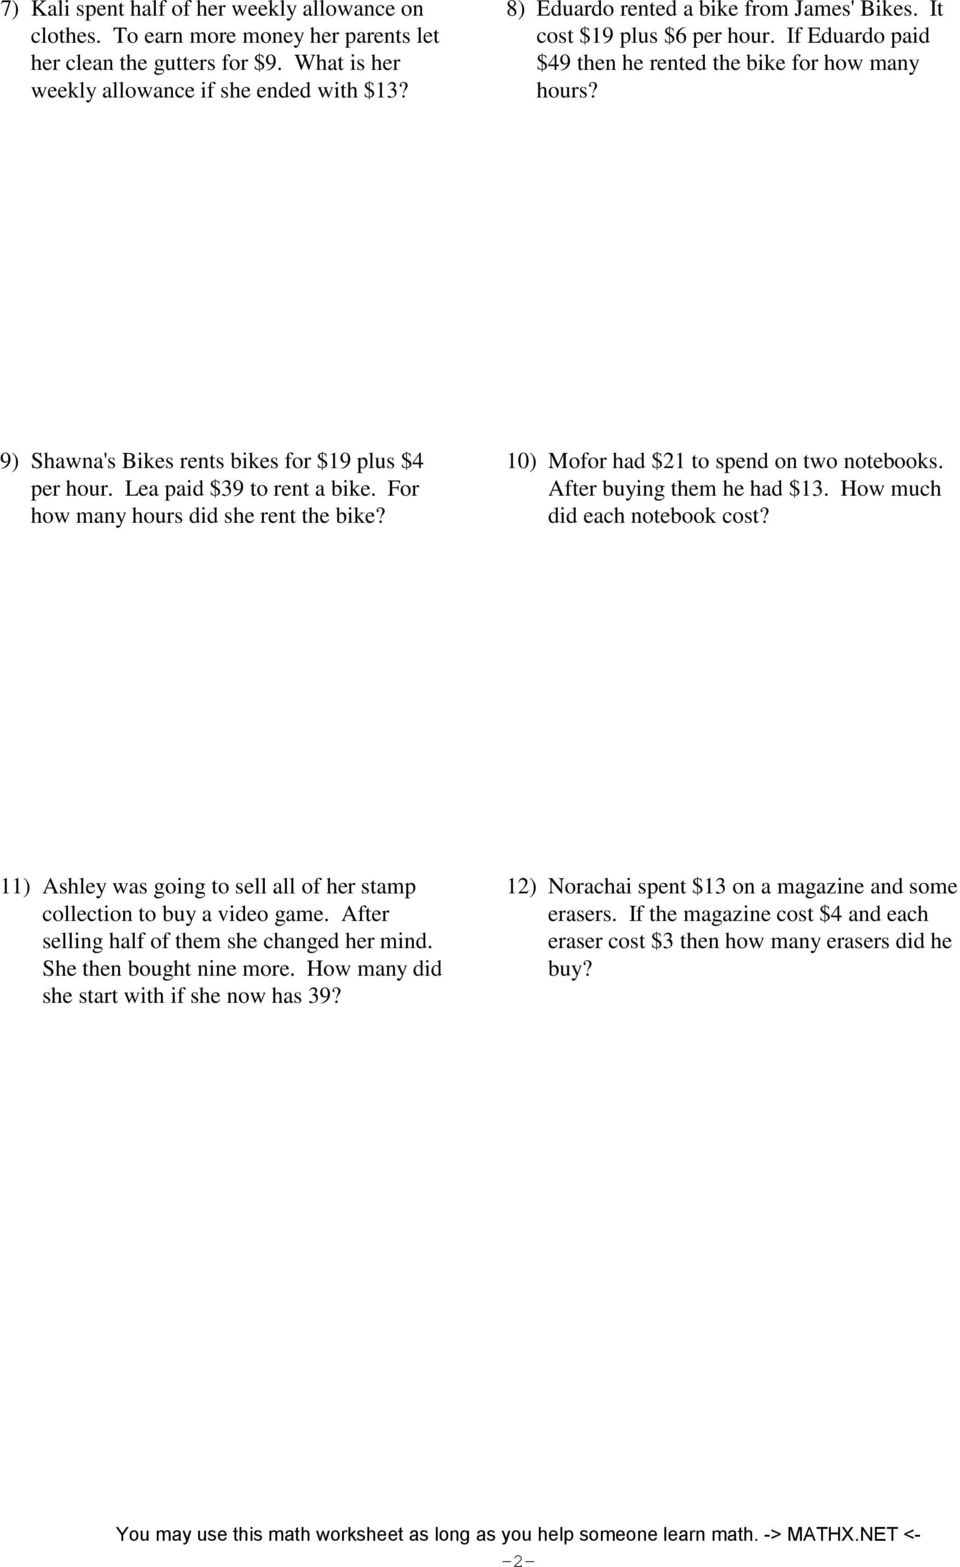 Multi Step Equations Worksheet 7th Grade – Multi Step Equation Word Problems Worksheet